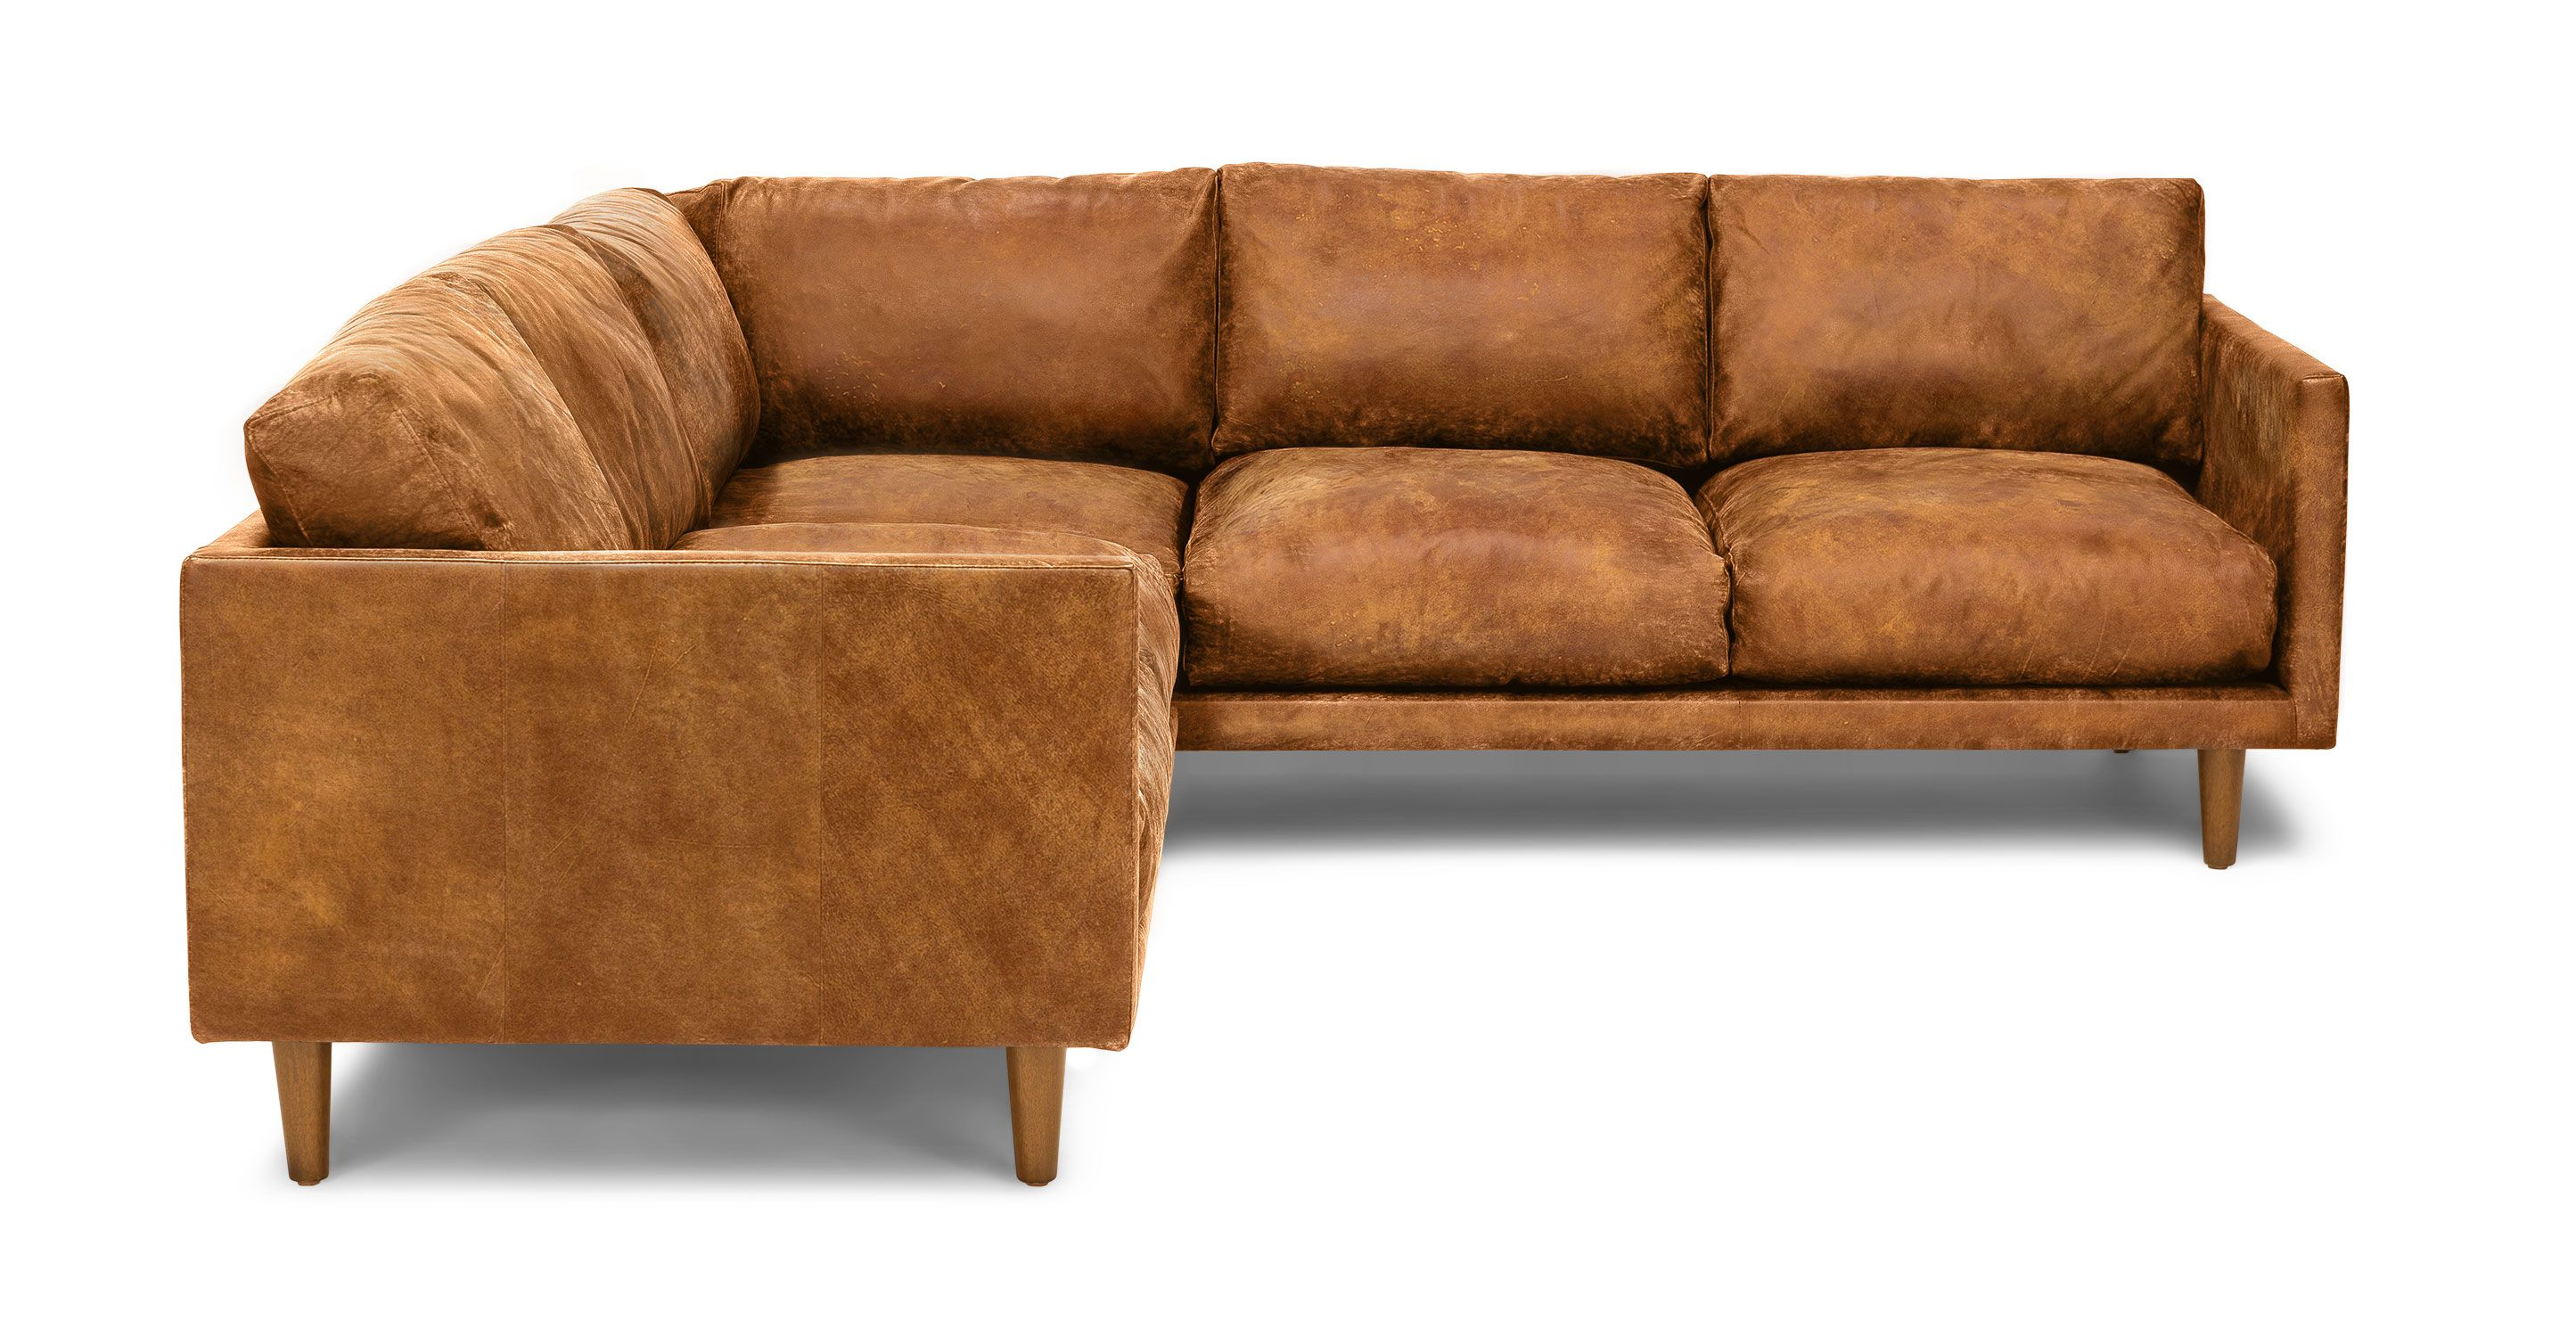 Nirvana dakota tan corner sectional